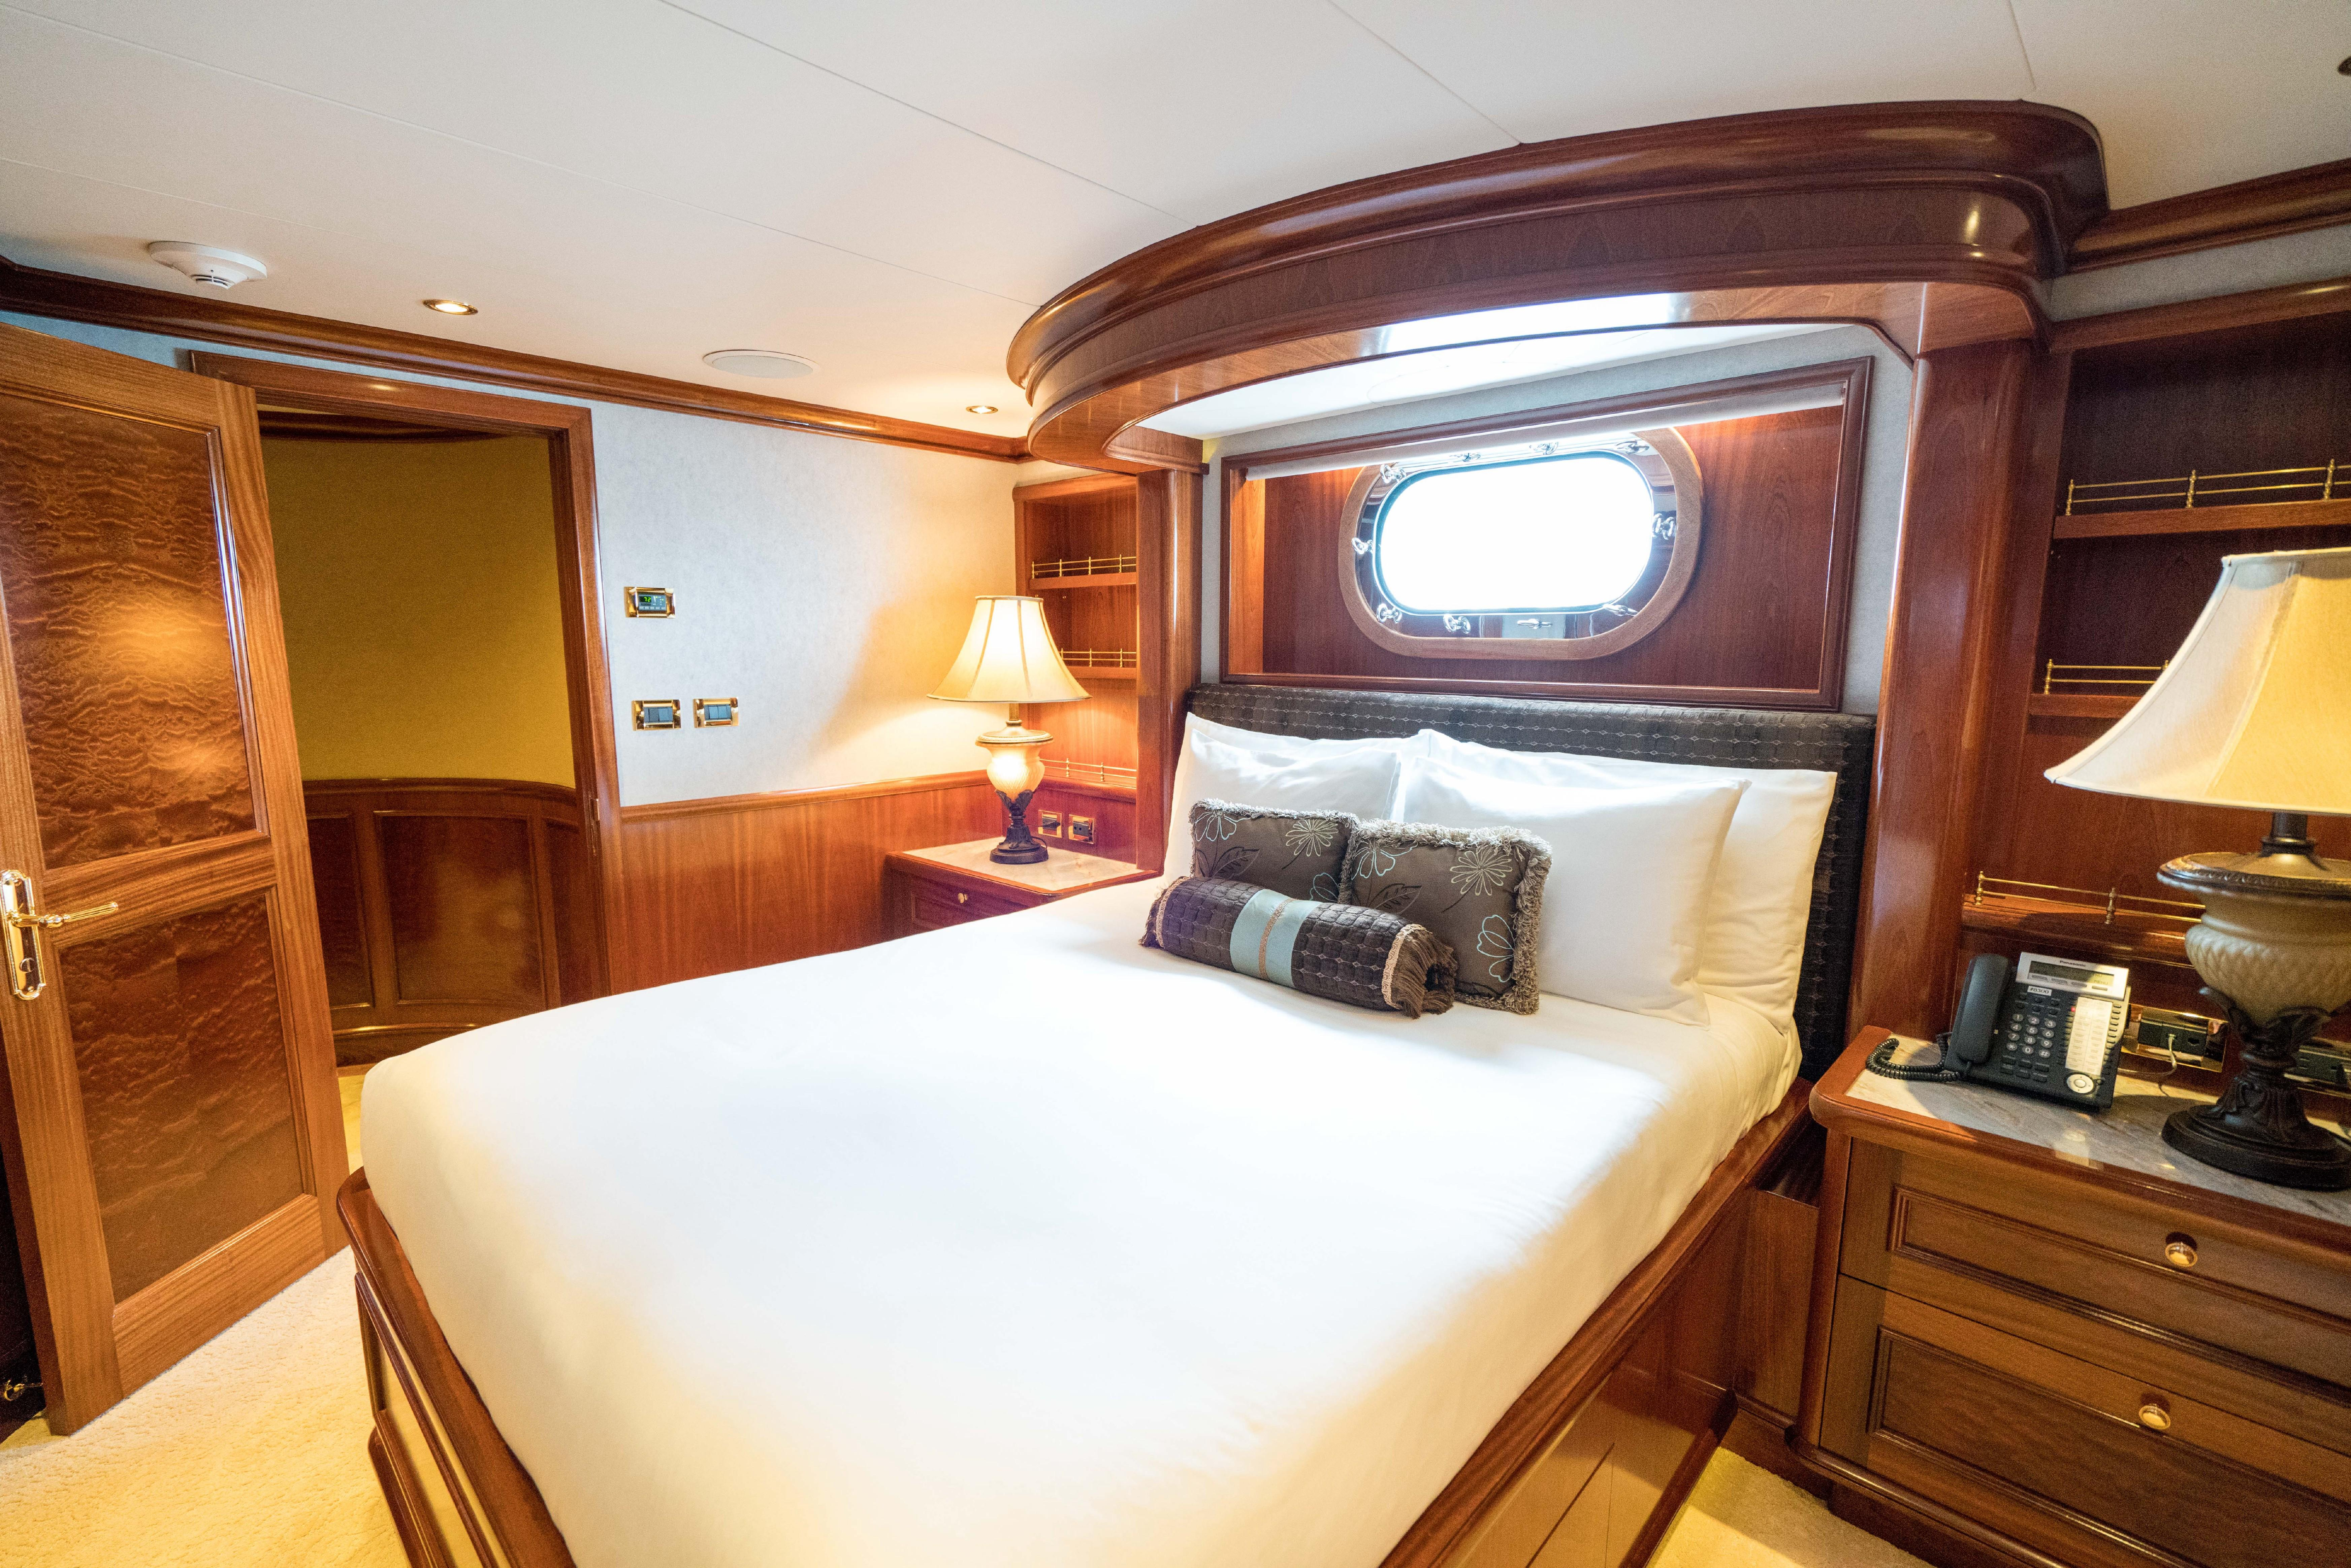 SECOND QUEEN STATEROOM